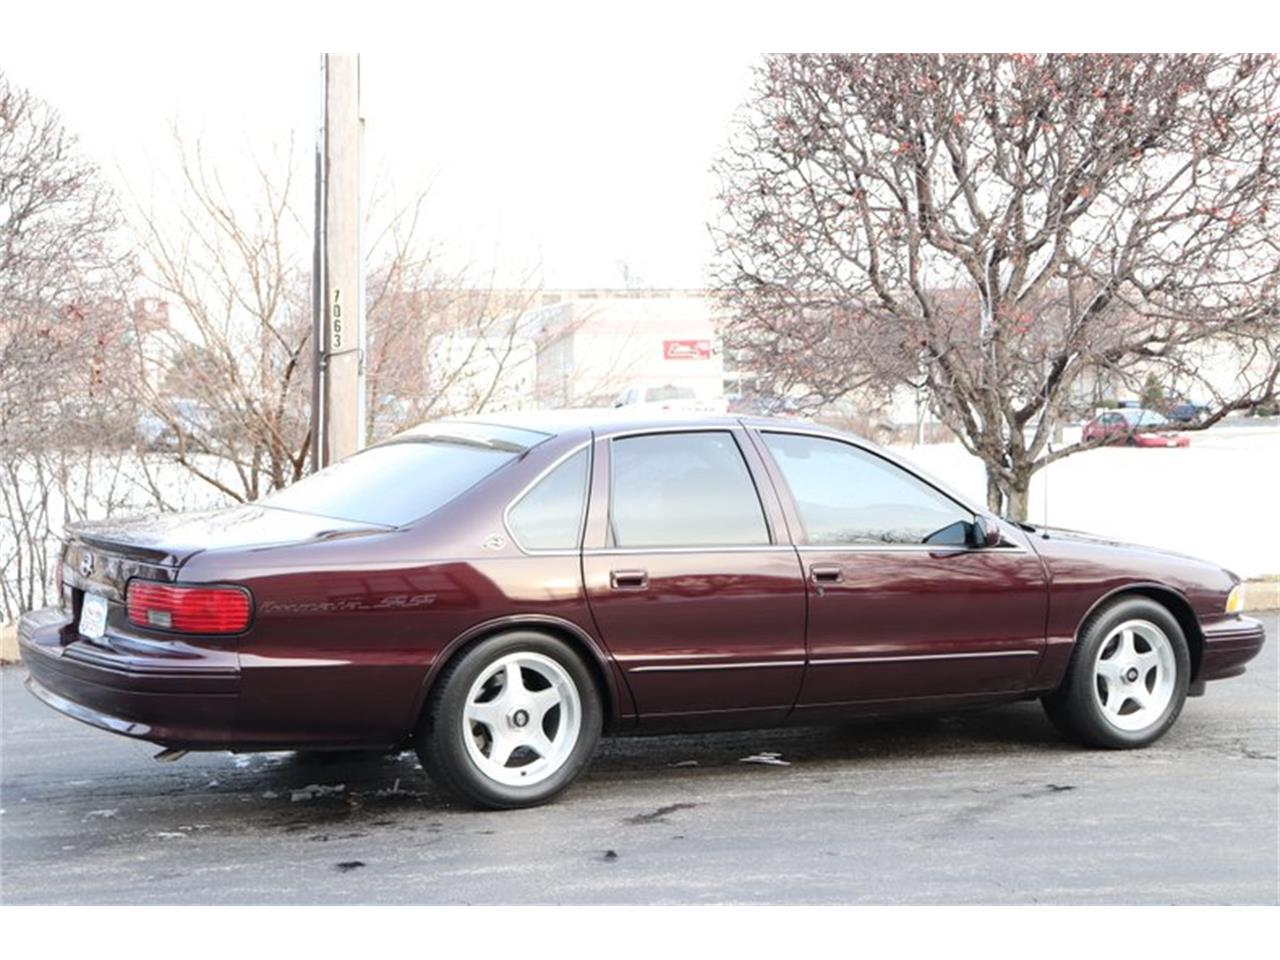 Large Picture of 1996 Chevrolet Impala located in Alsip Illinois - $28,900.00 Offered by Midwest Car Exchange - P1PX